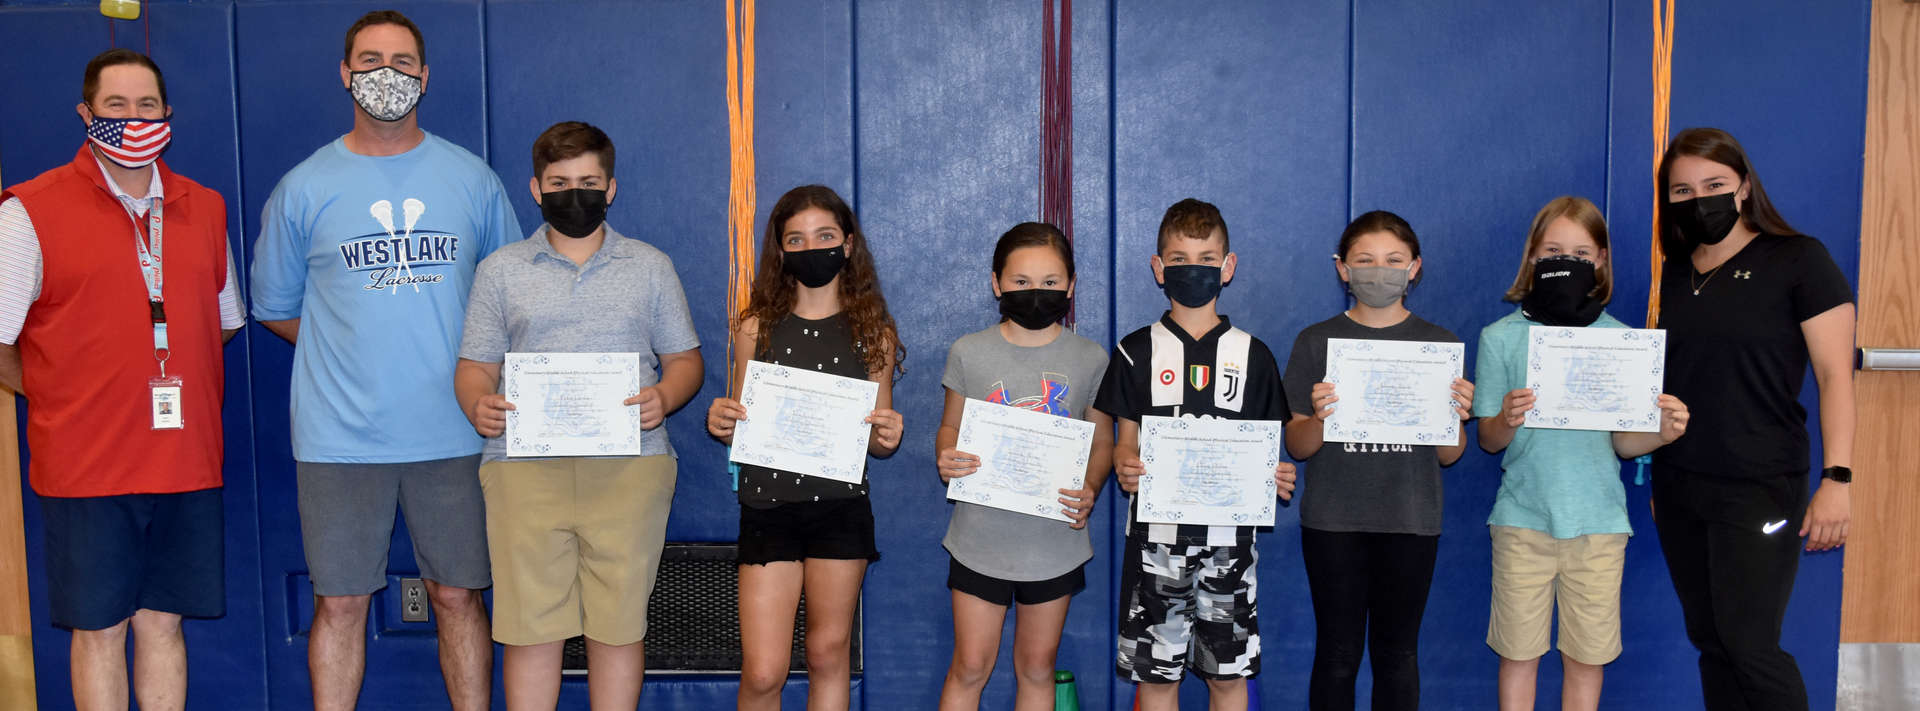 6 students with awards pose for picture with 3 teachers